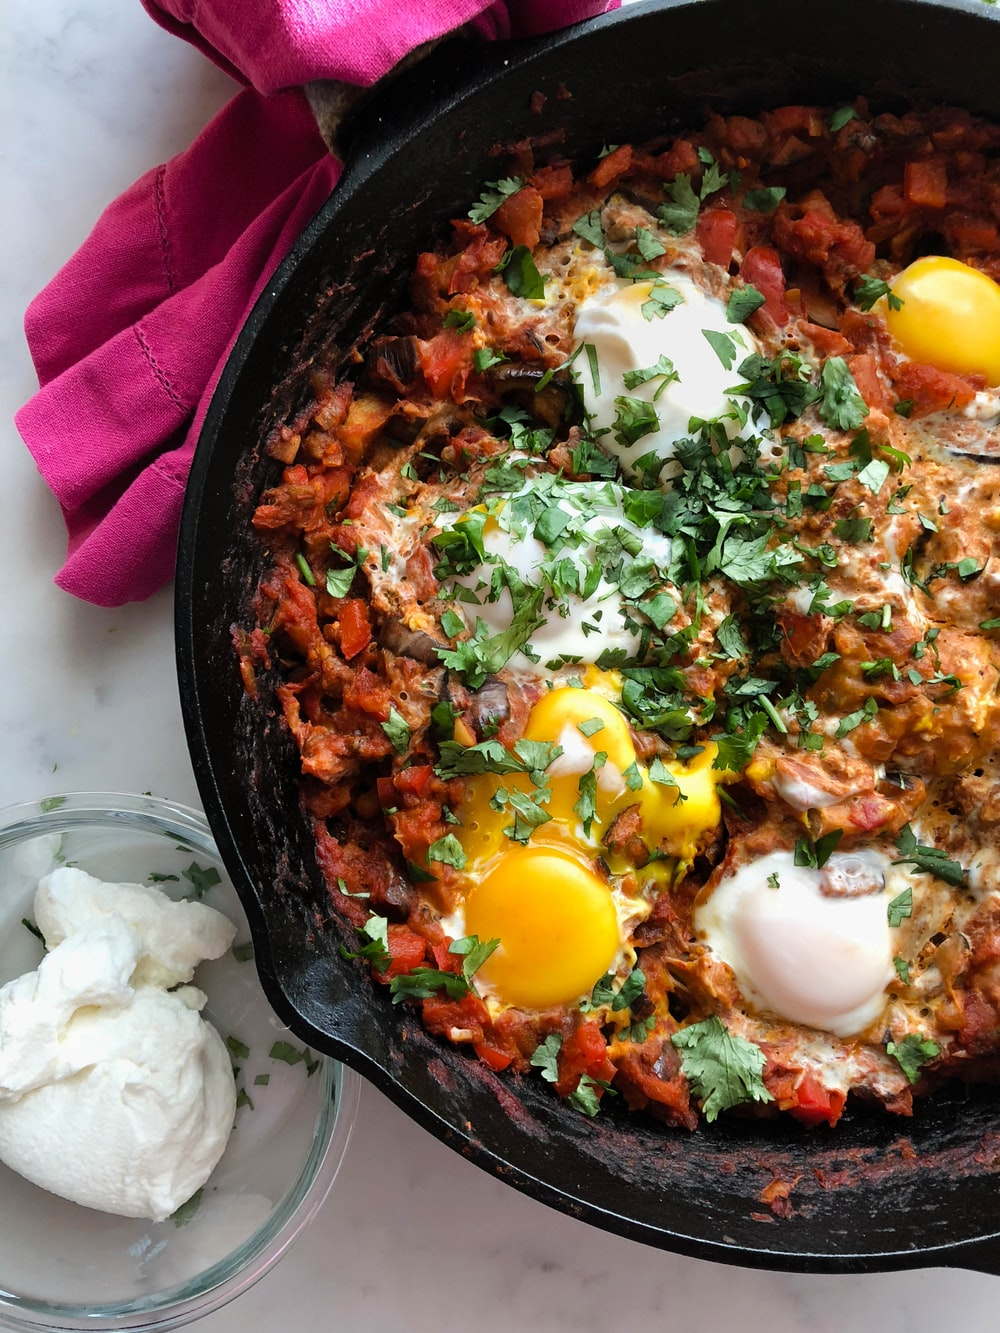 cooked meat with eggs in skillet